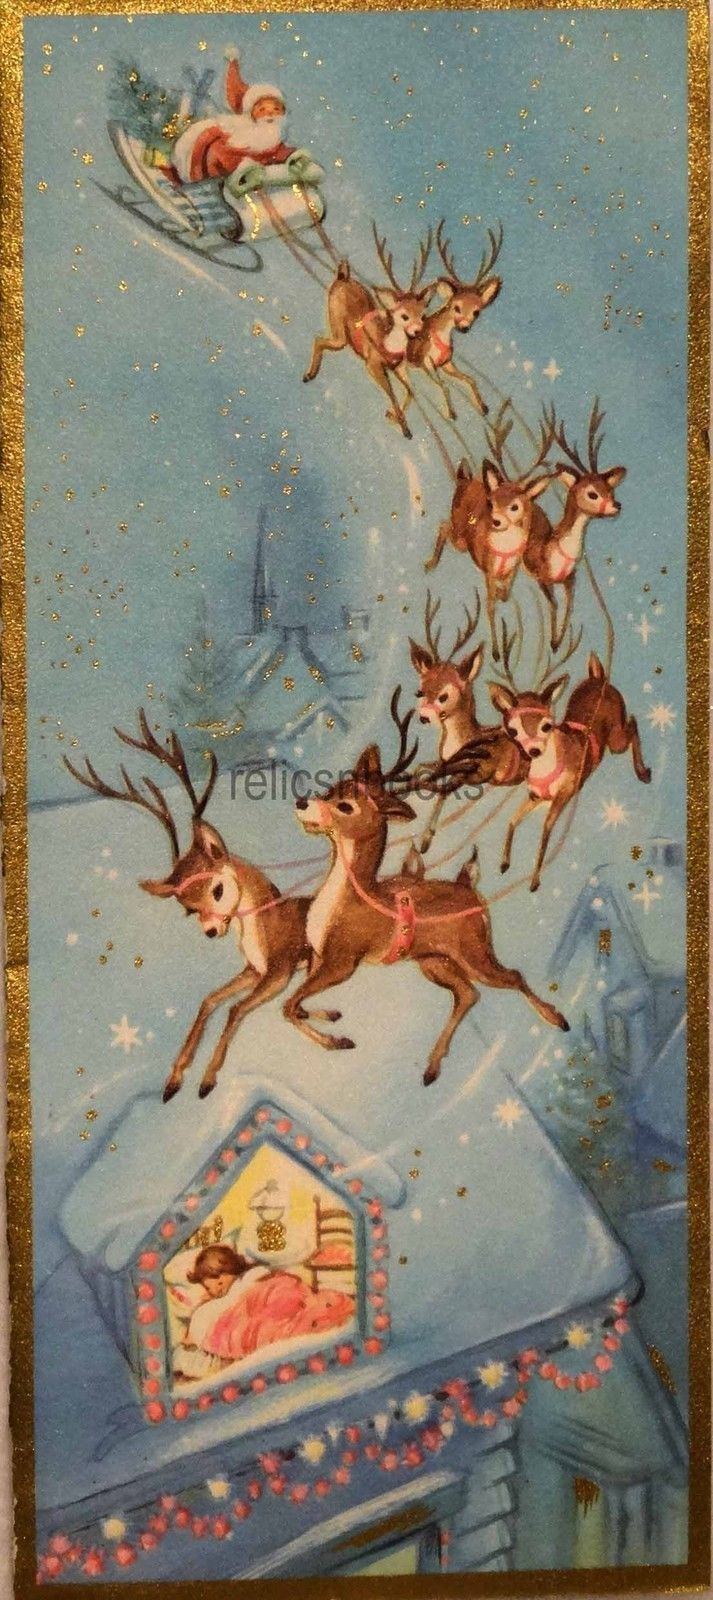 2217 60s Unused Santa-Sleigh-Reindeer-Deer-Vintage Christmas Card ...